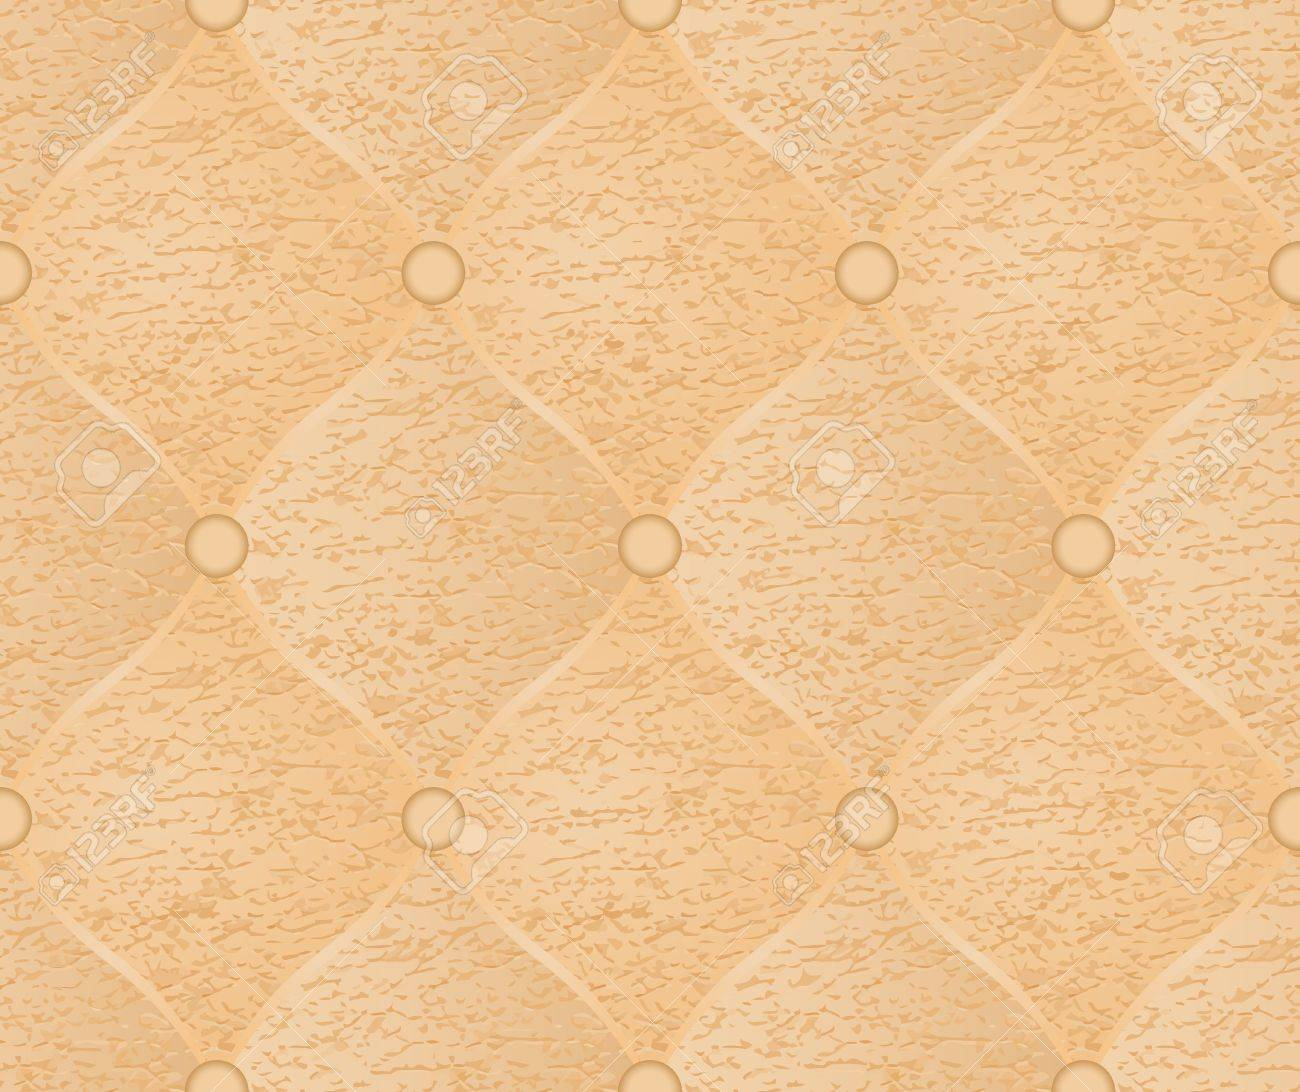 Quilted Fabric Quilted Fabric Seamless Pattern